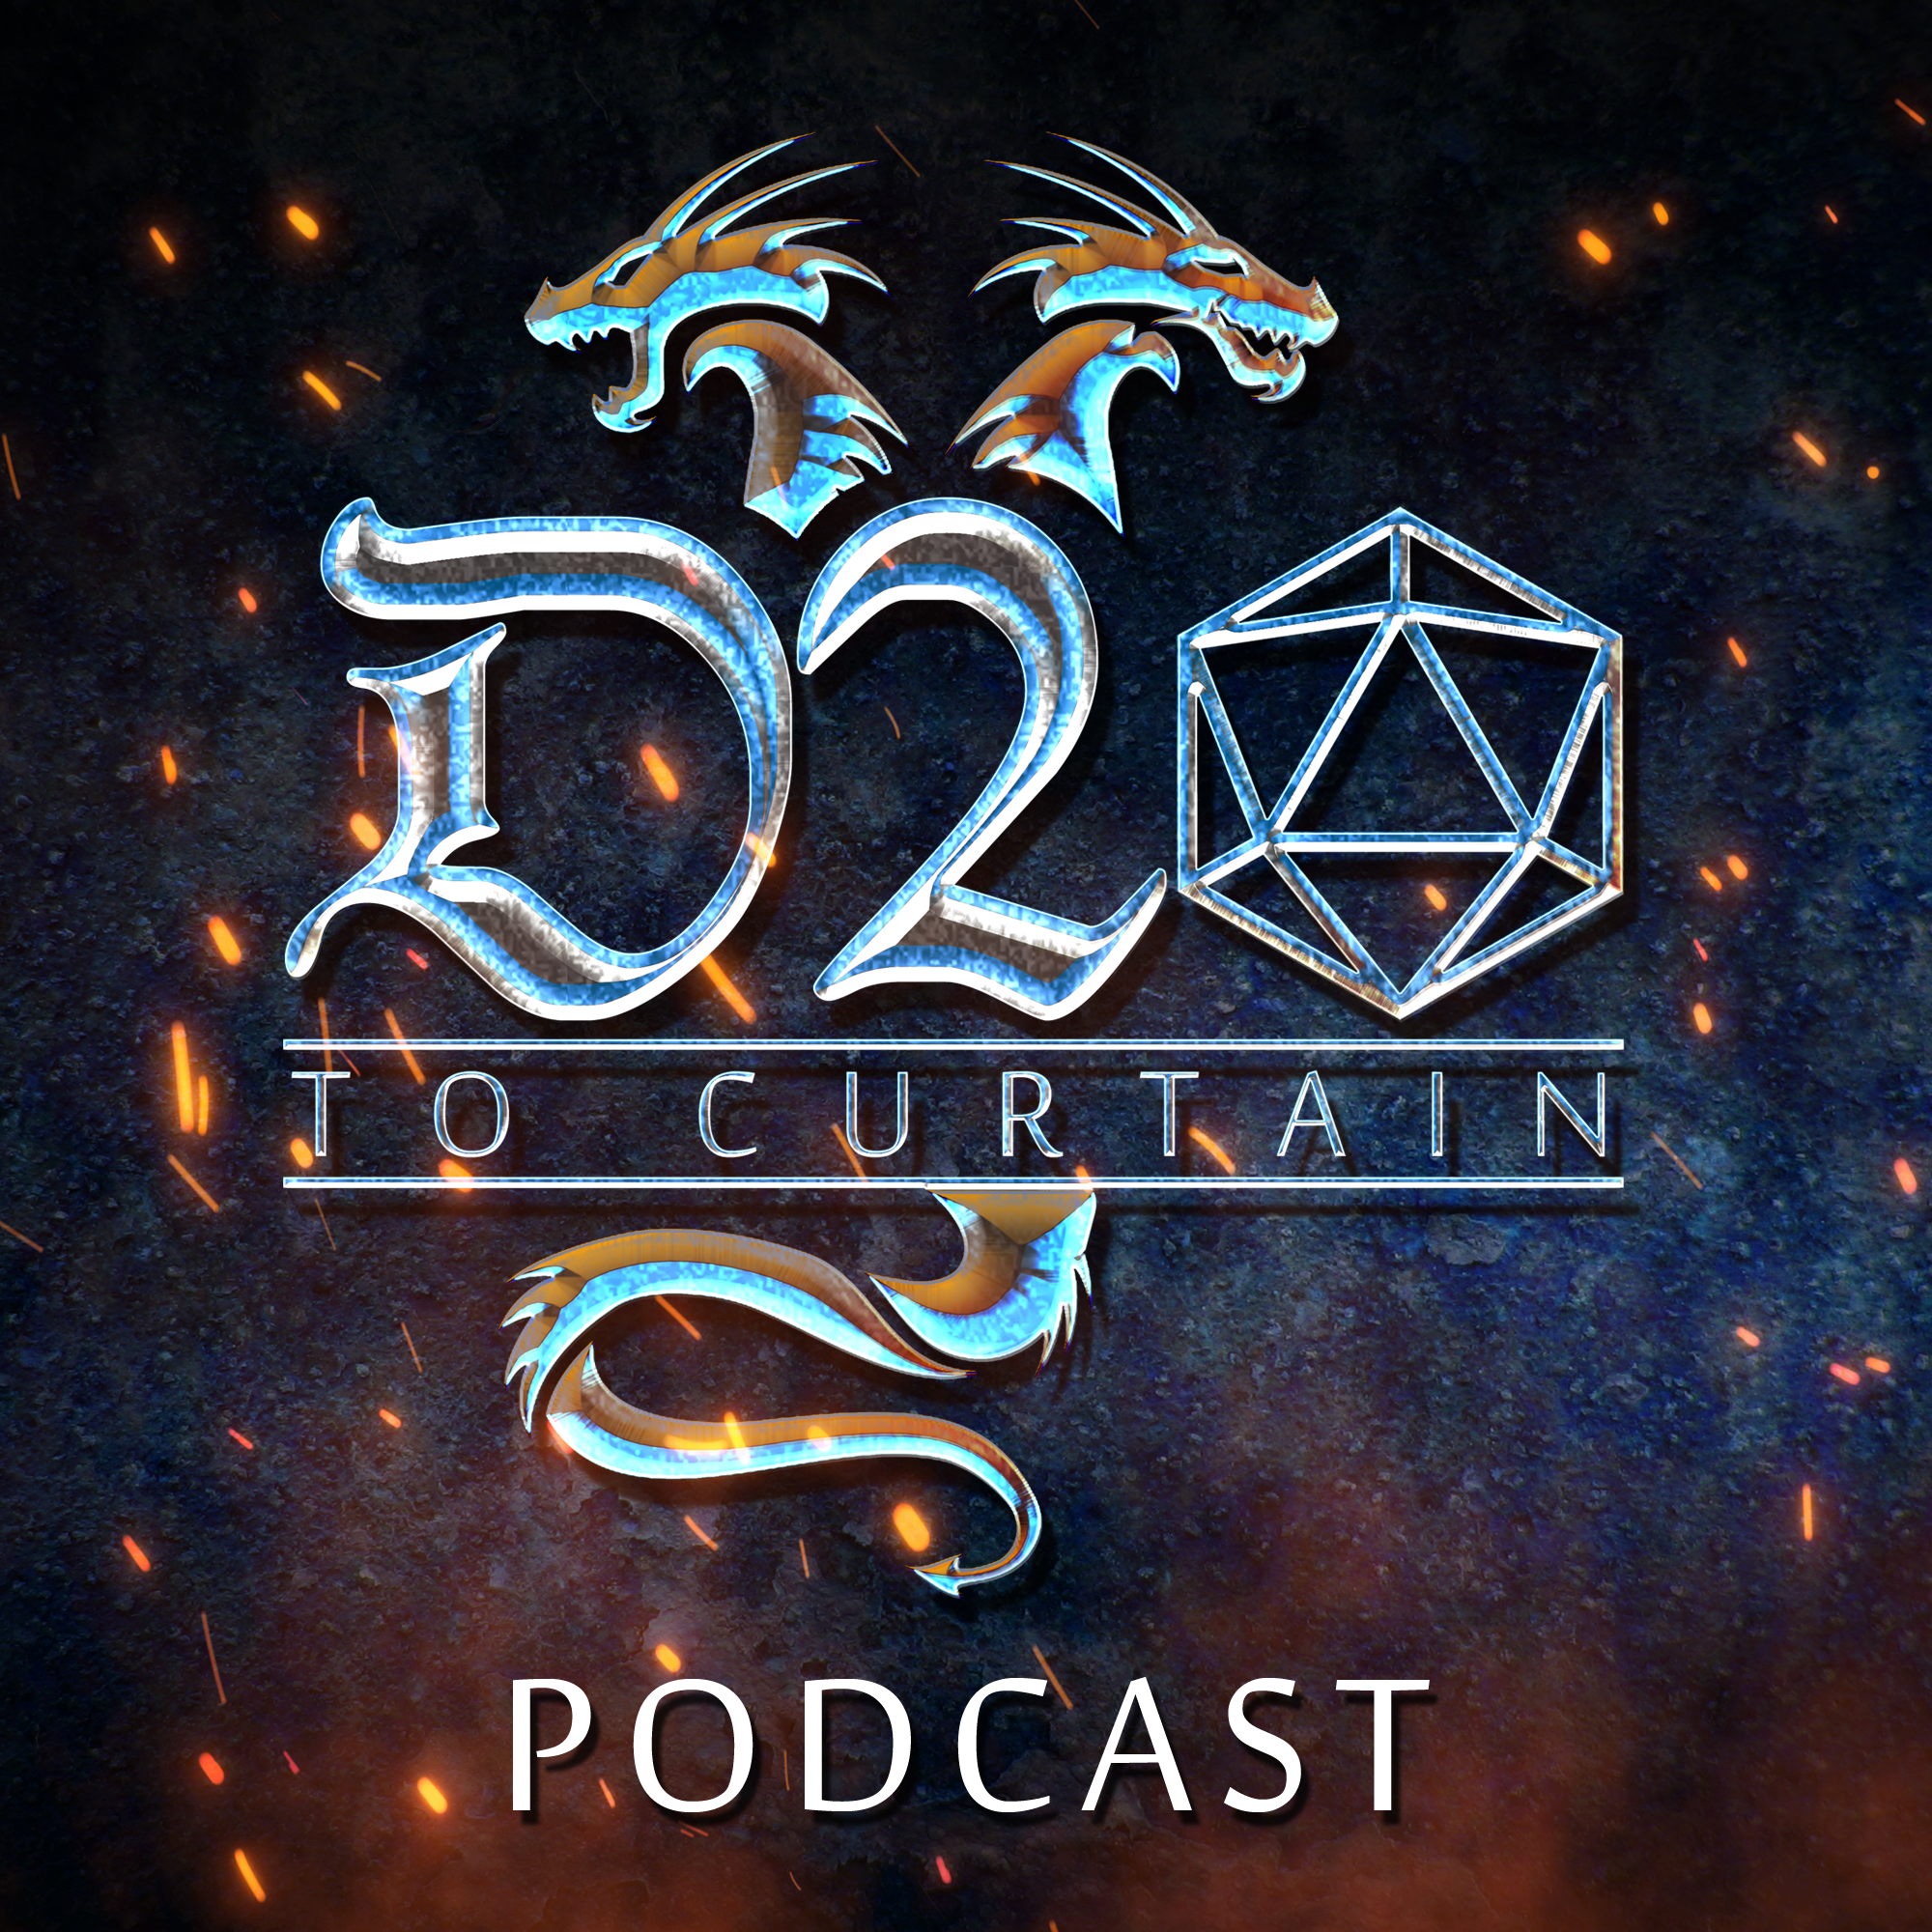 D20 to Curtain Podcast